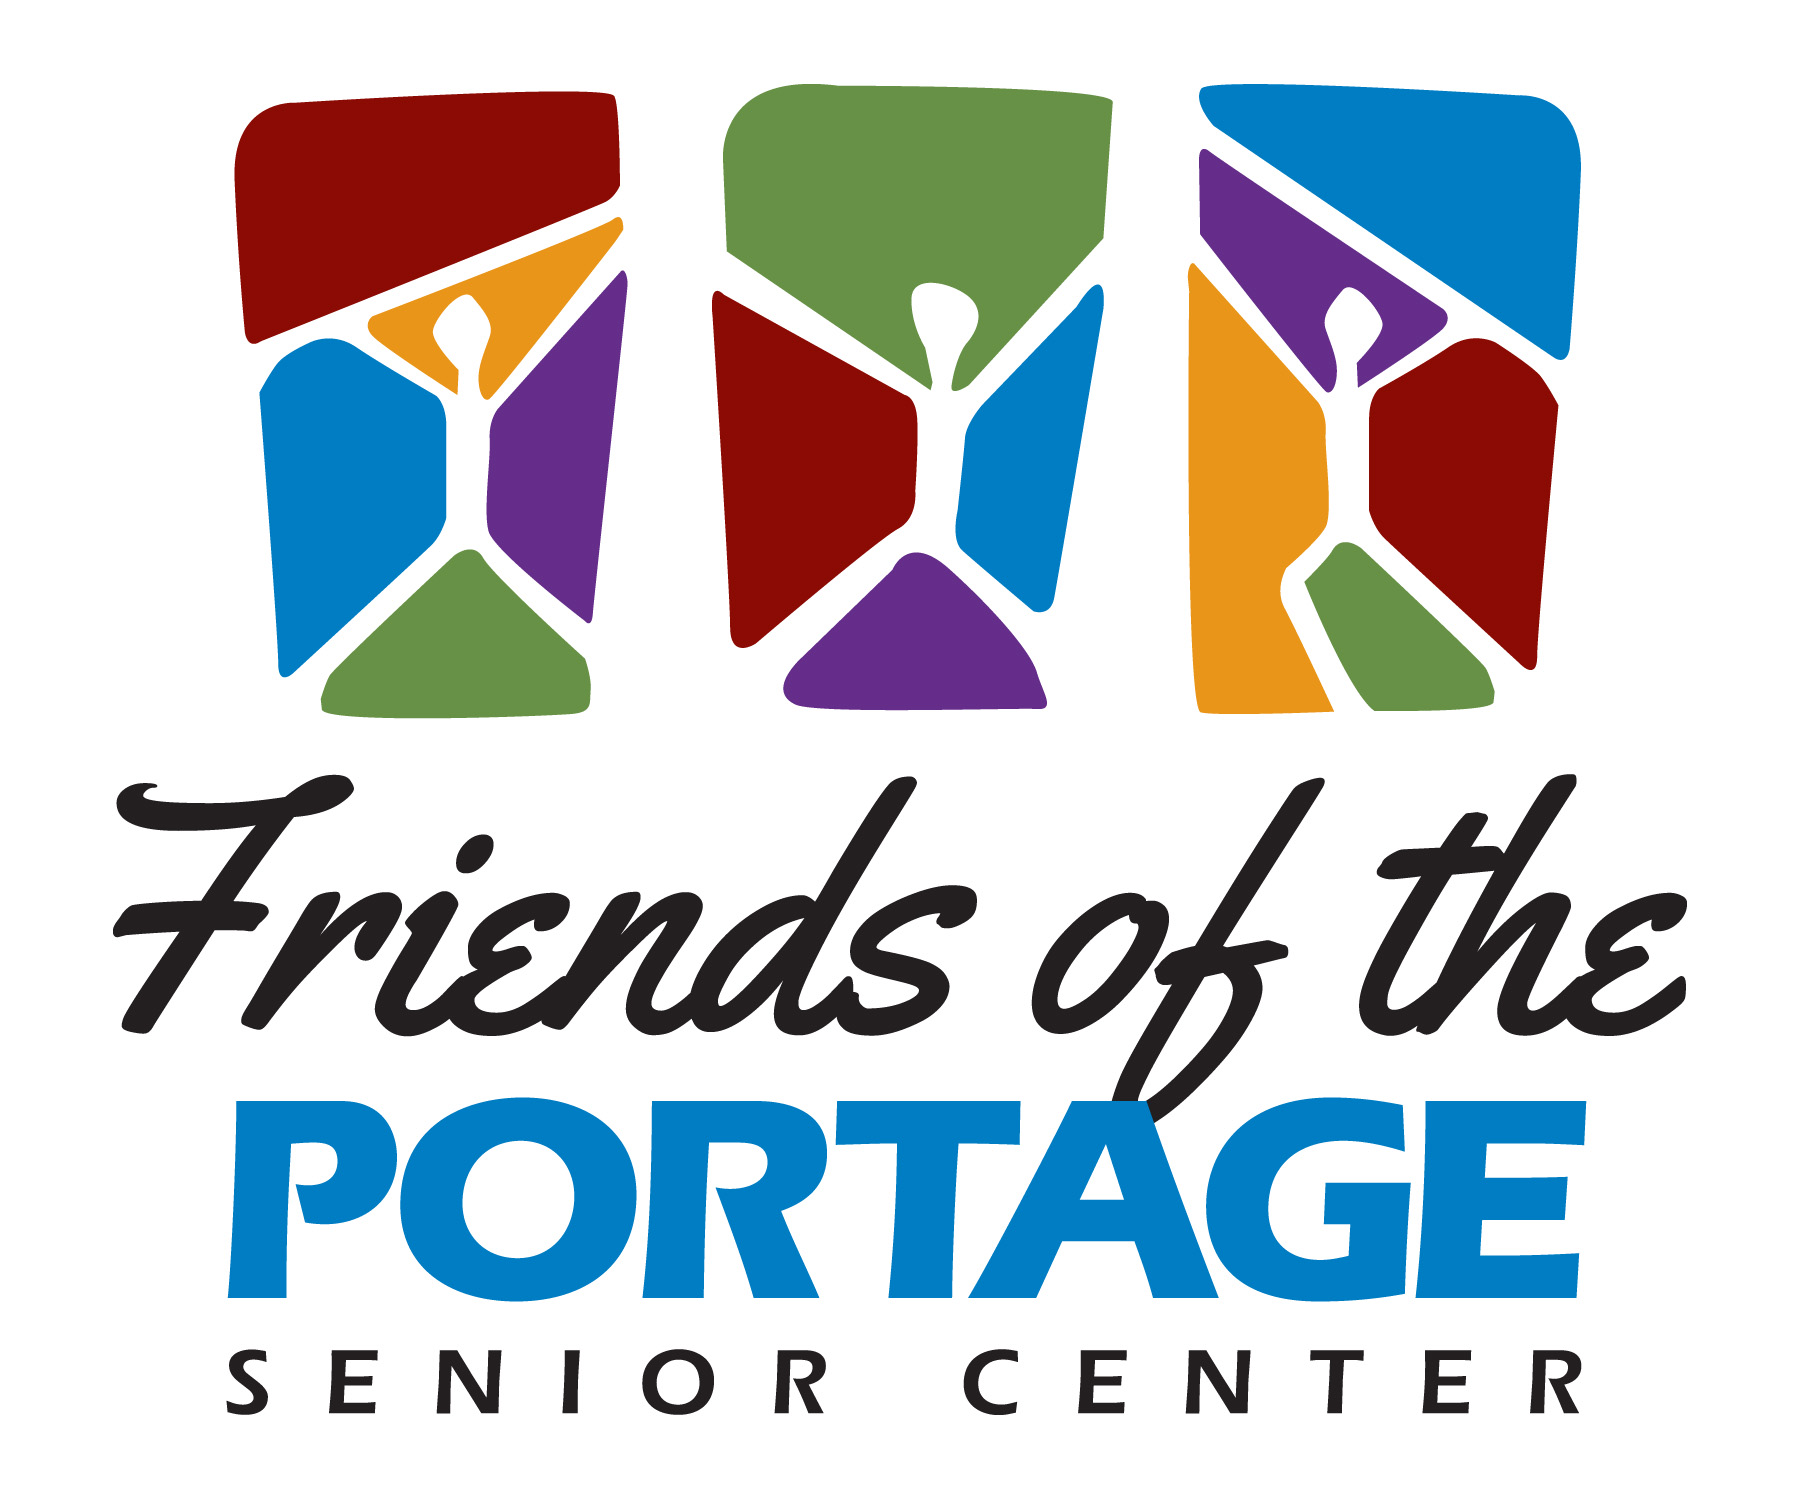 The Friends of the Portage Senior Center